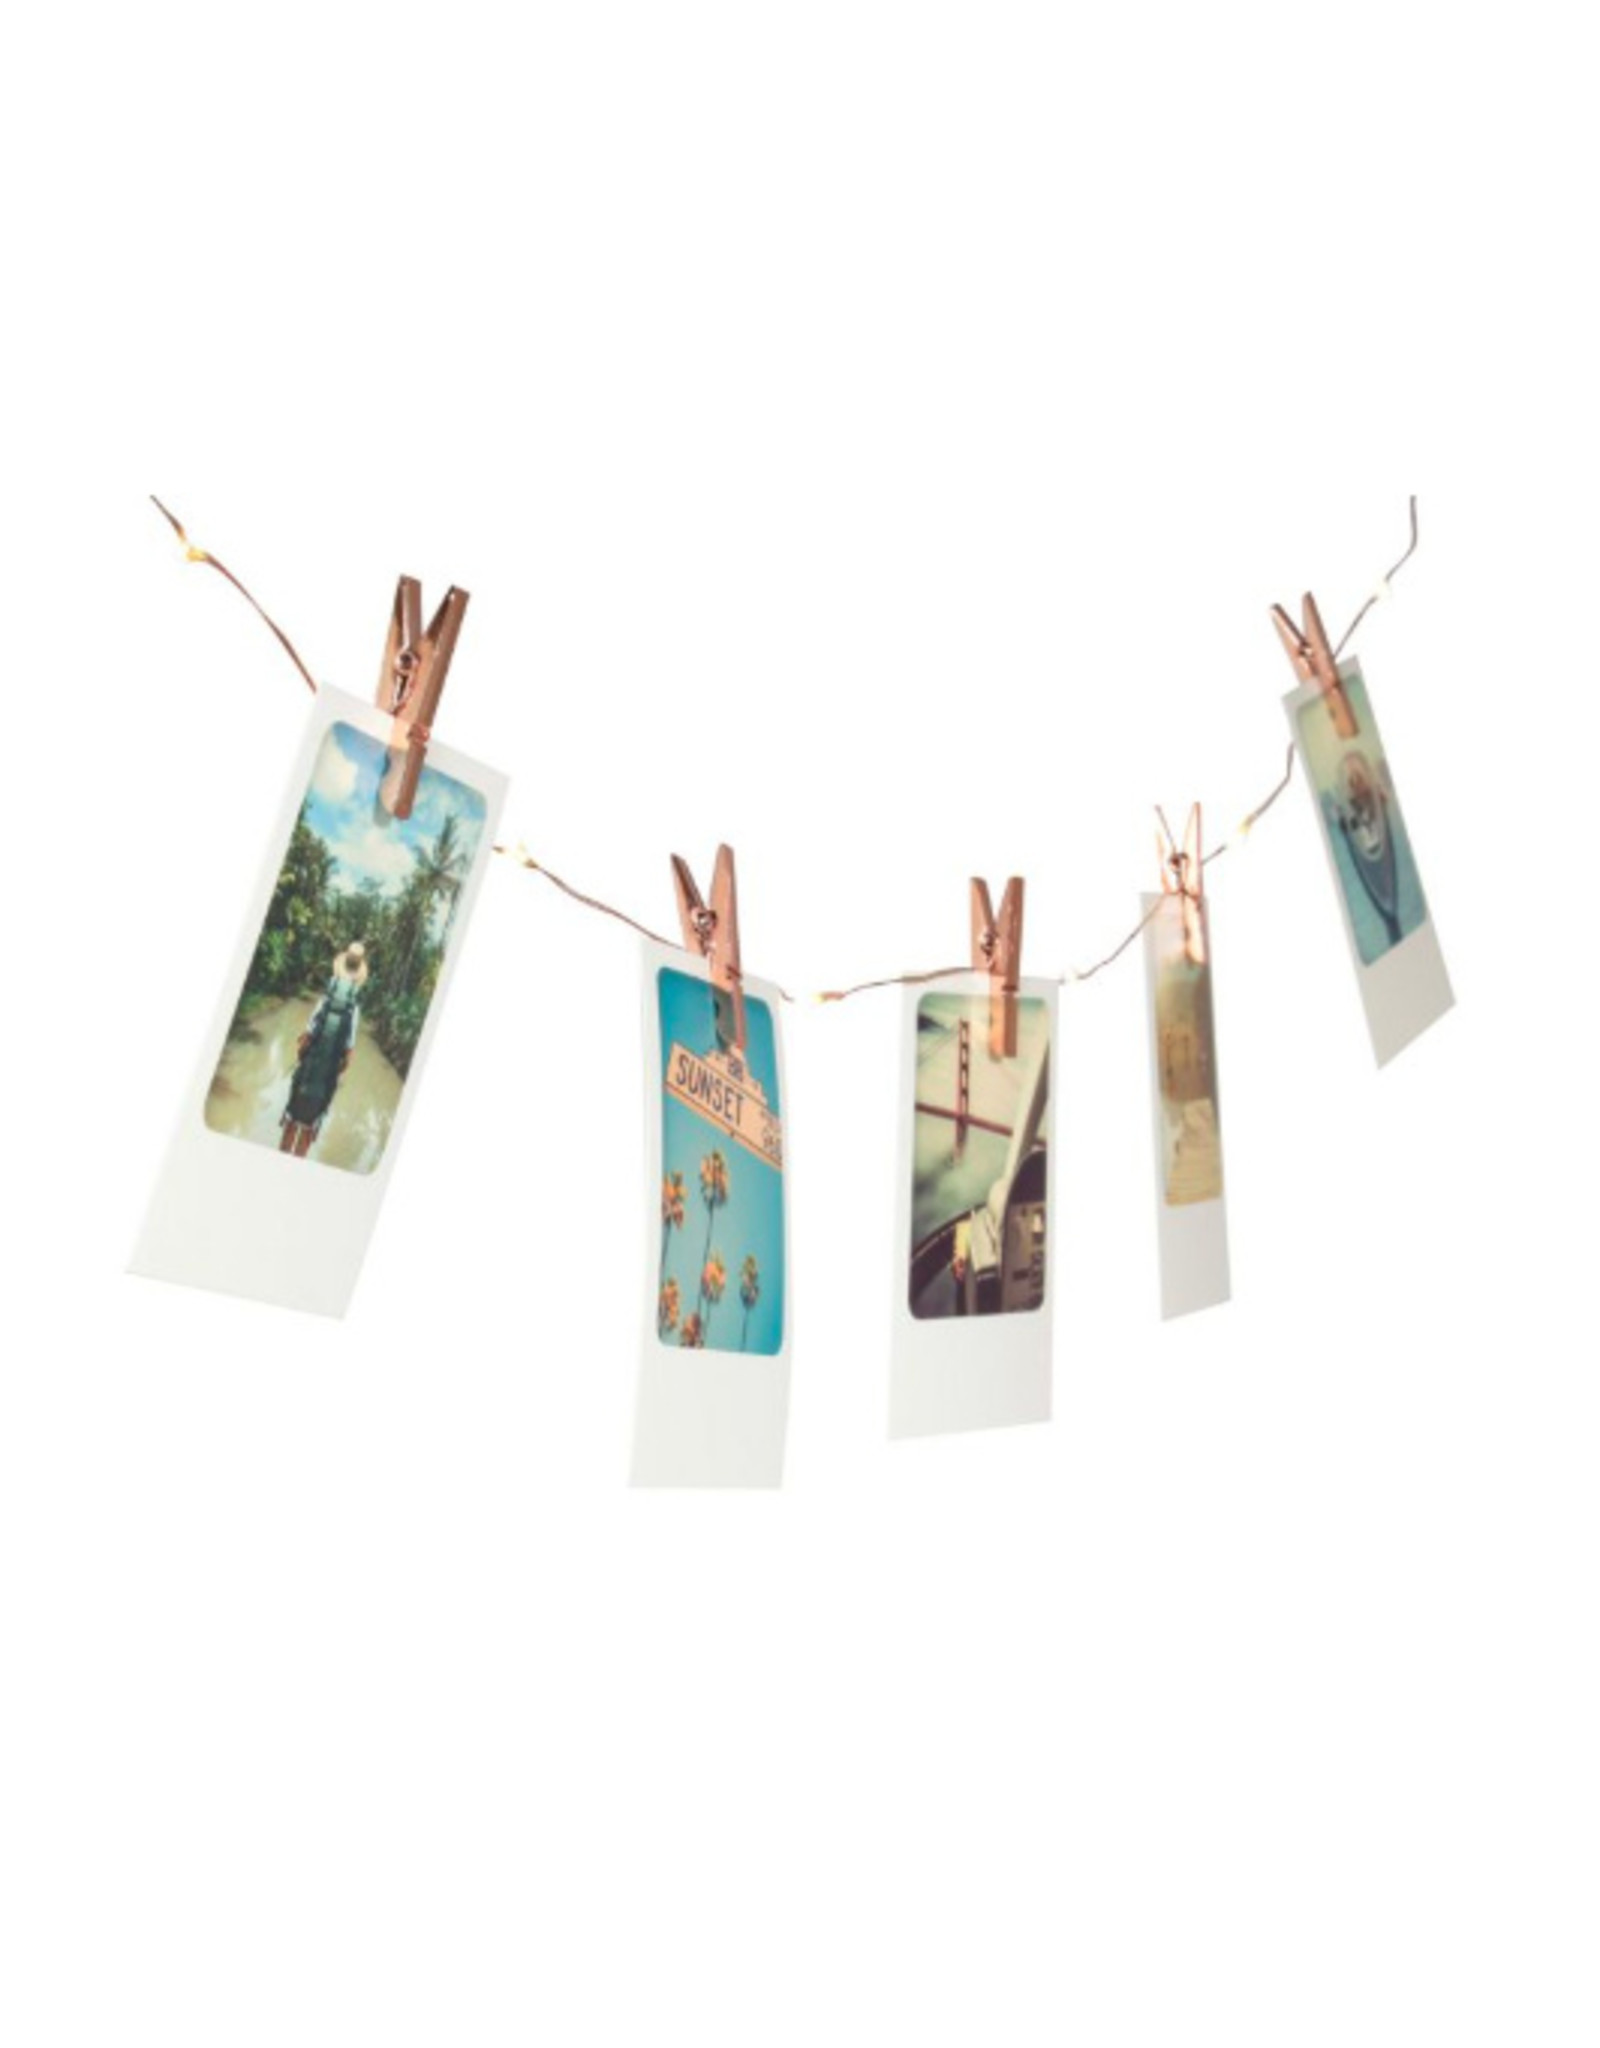 garland with lights and clips to hang photos/cards